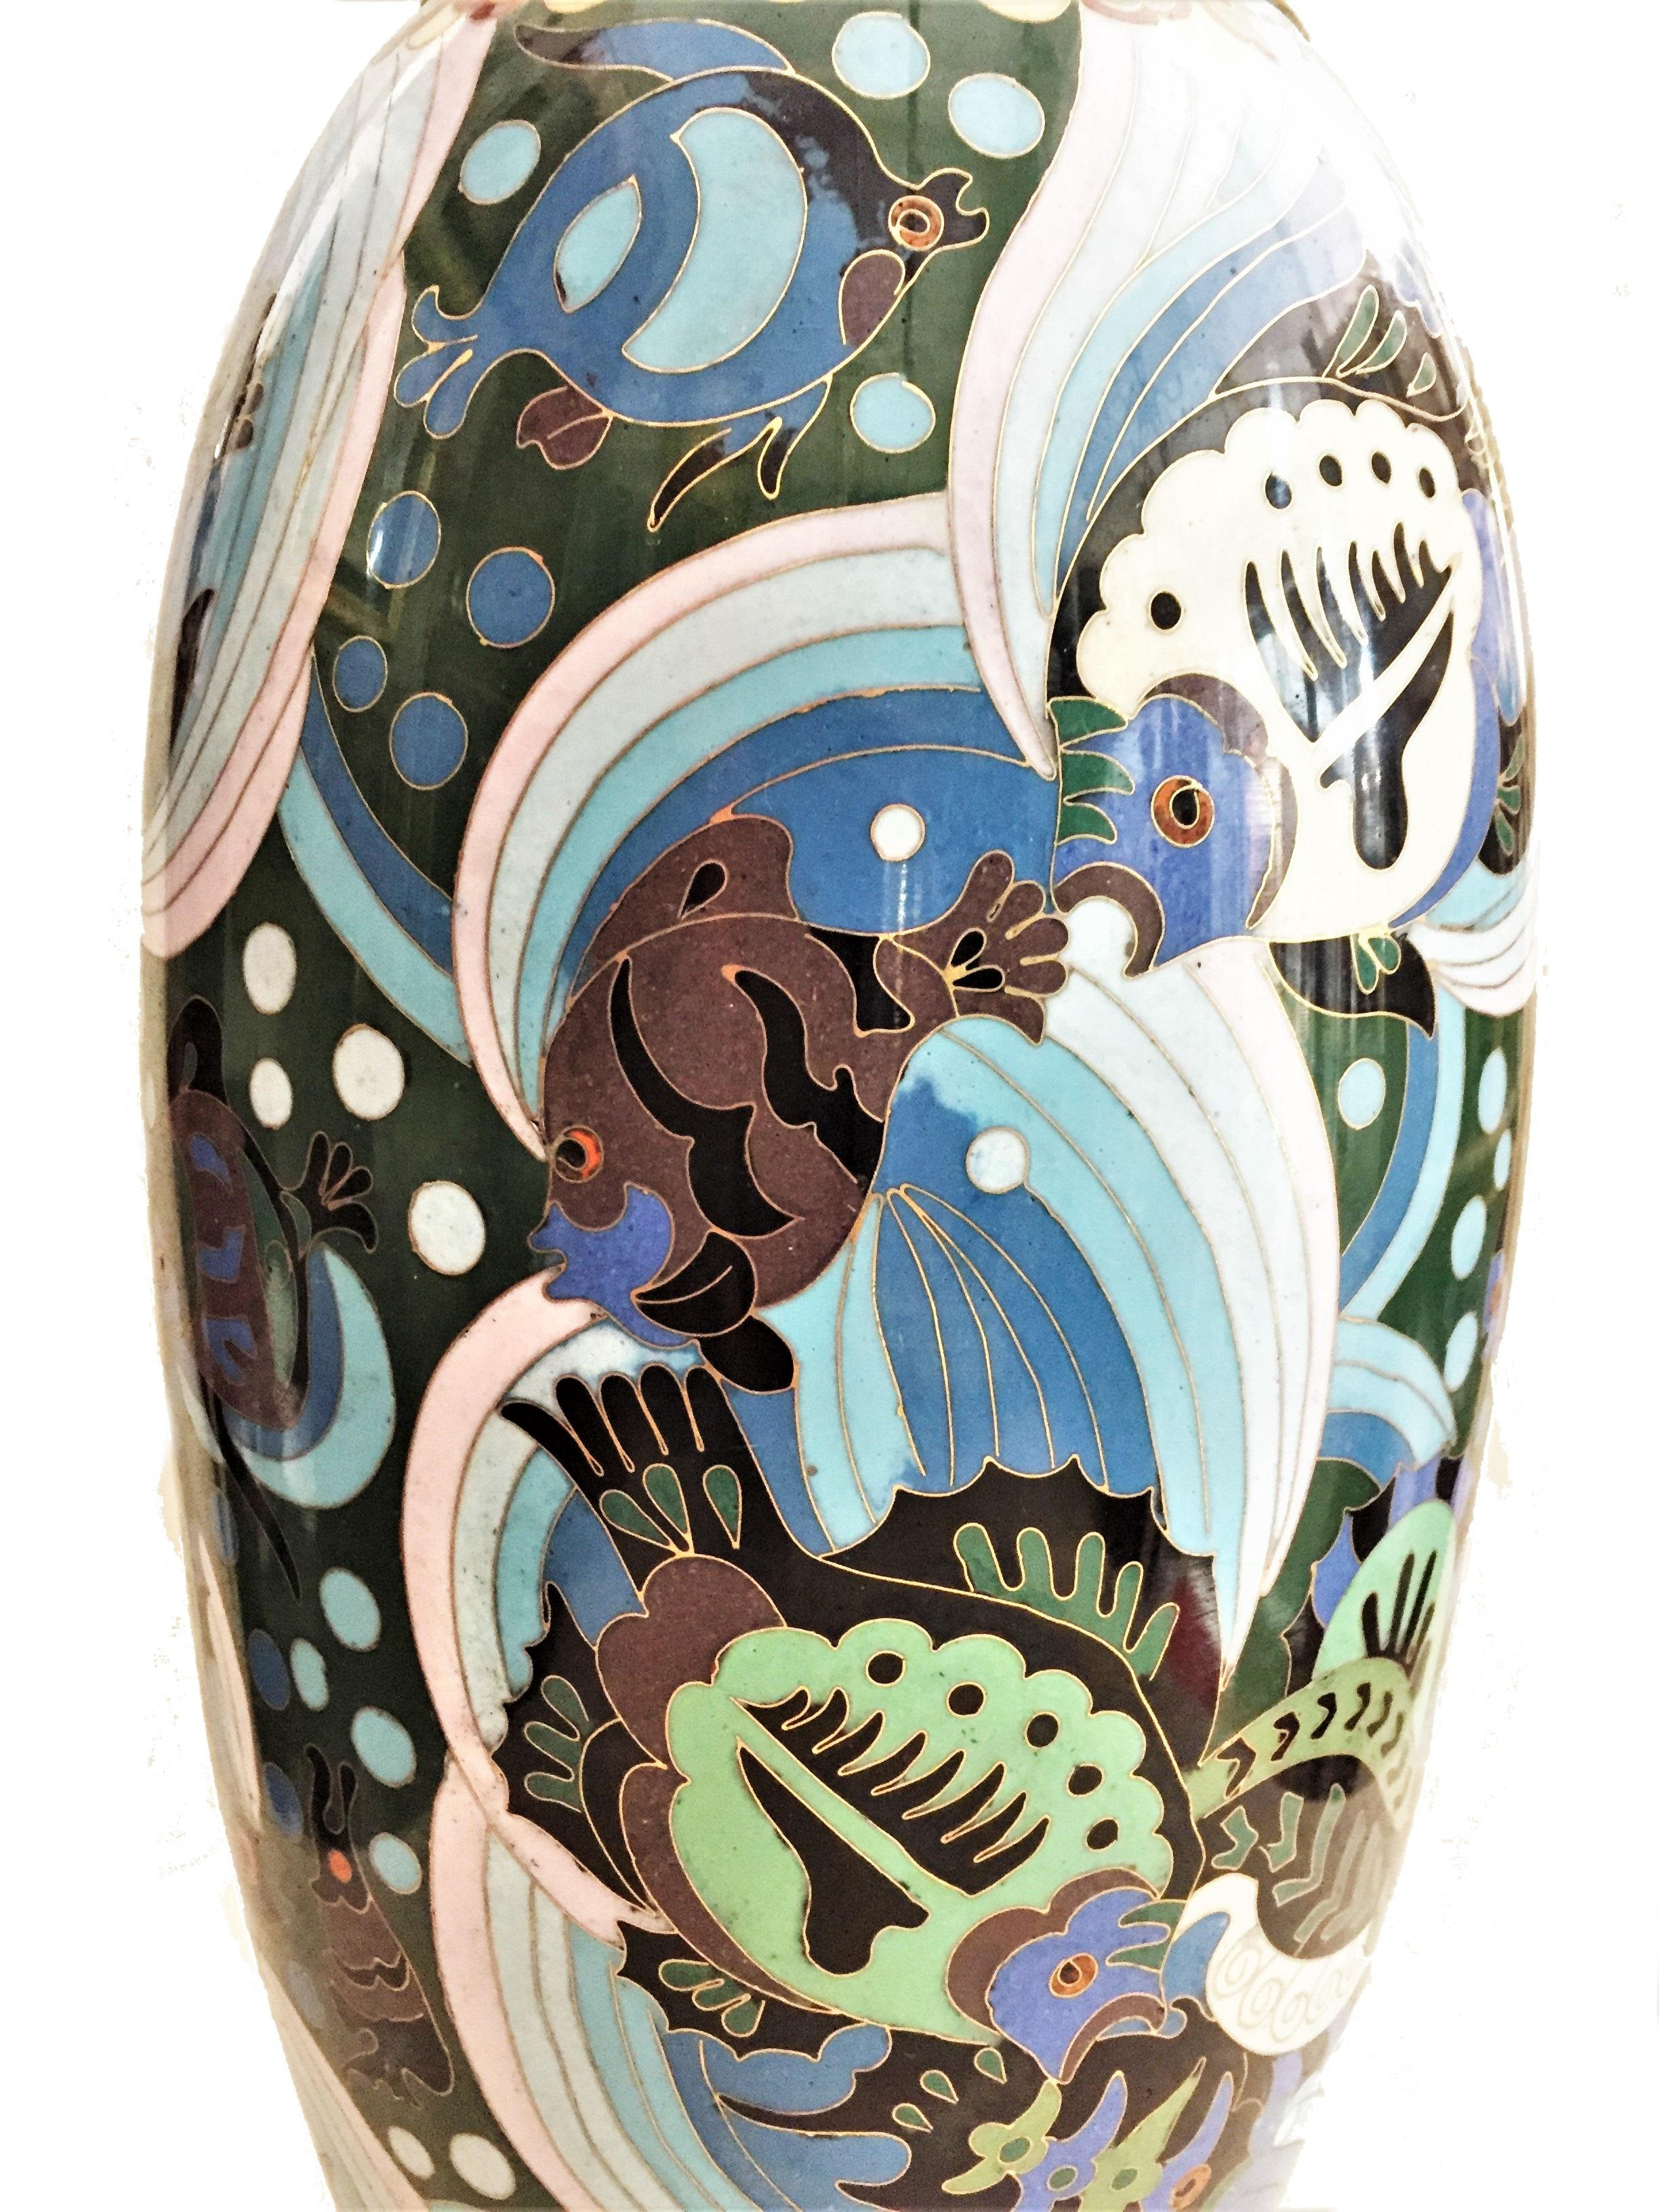 259 & French Art Deco Cloisonné Enamel Vase with Fish and Sea Horses circa 1920s